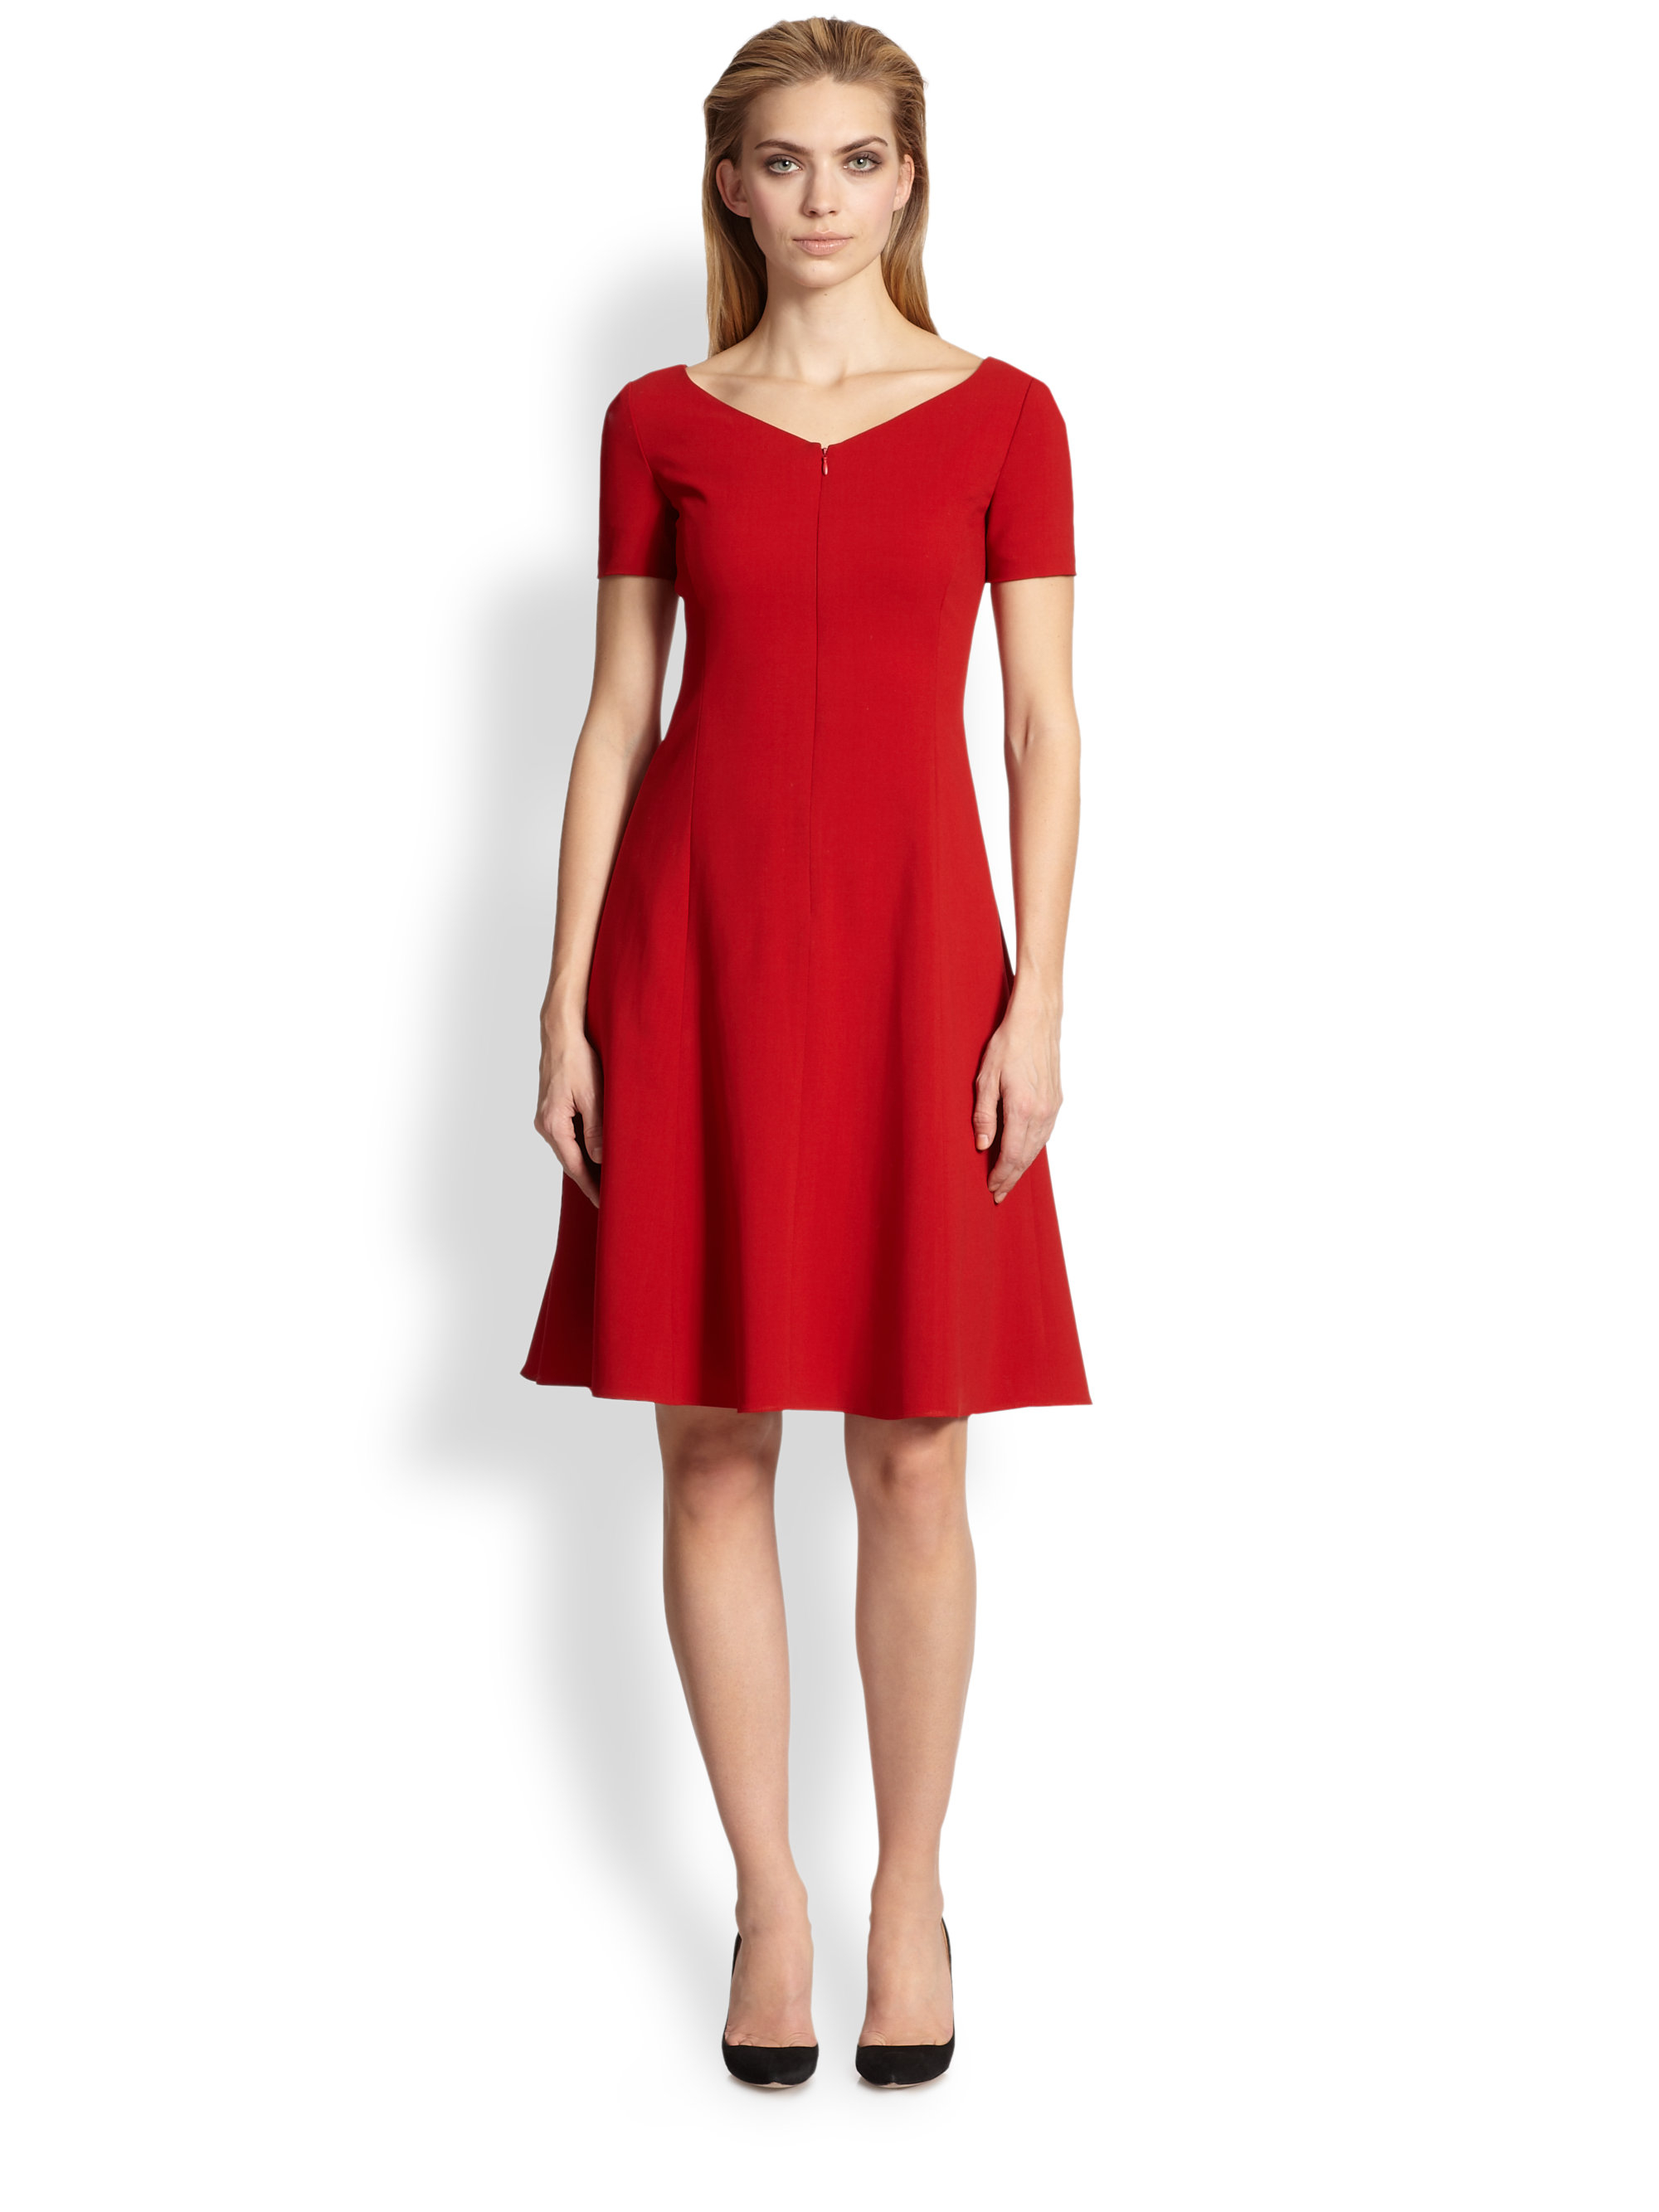 Armani Red Dress Cocktail Dresses 2016